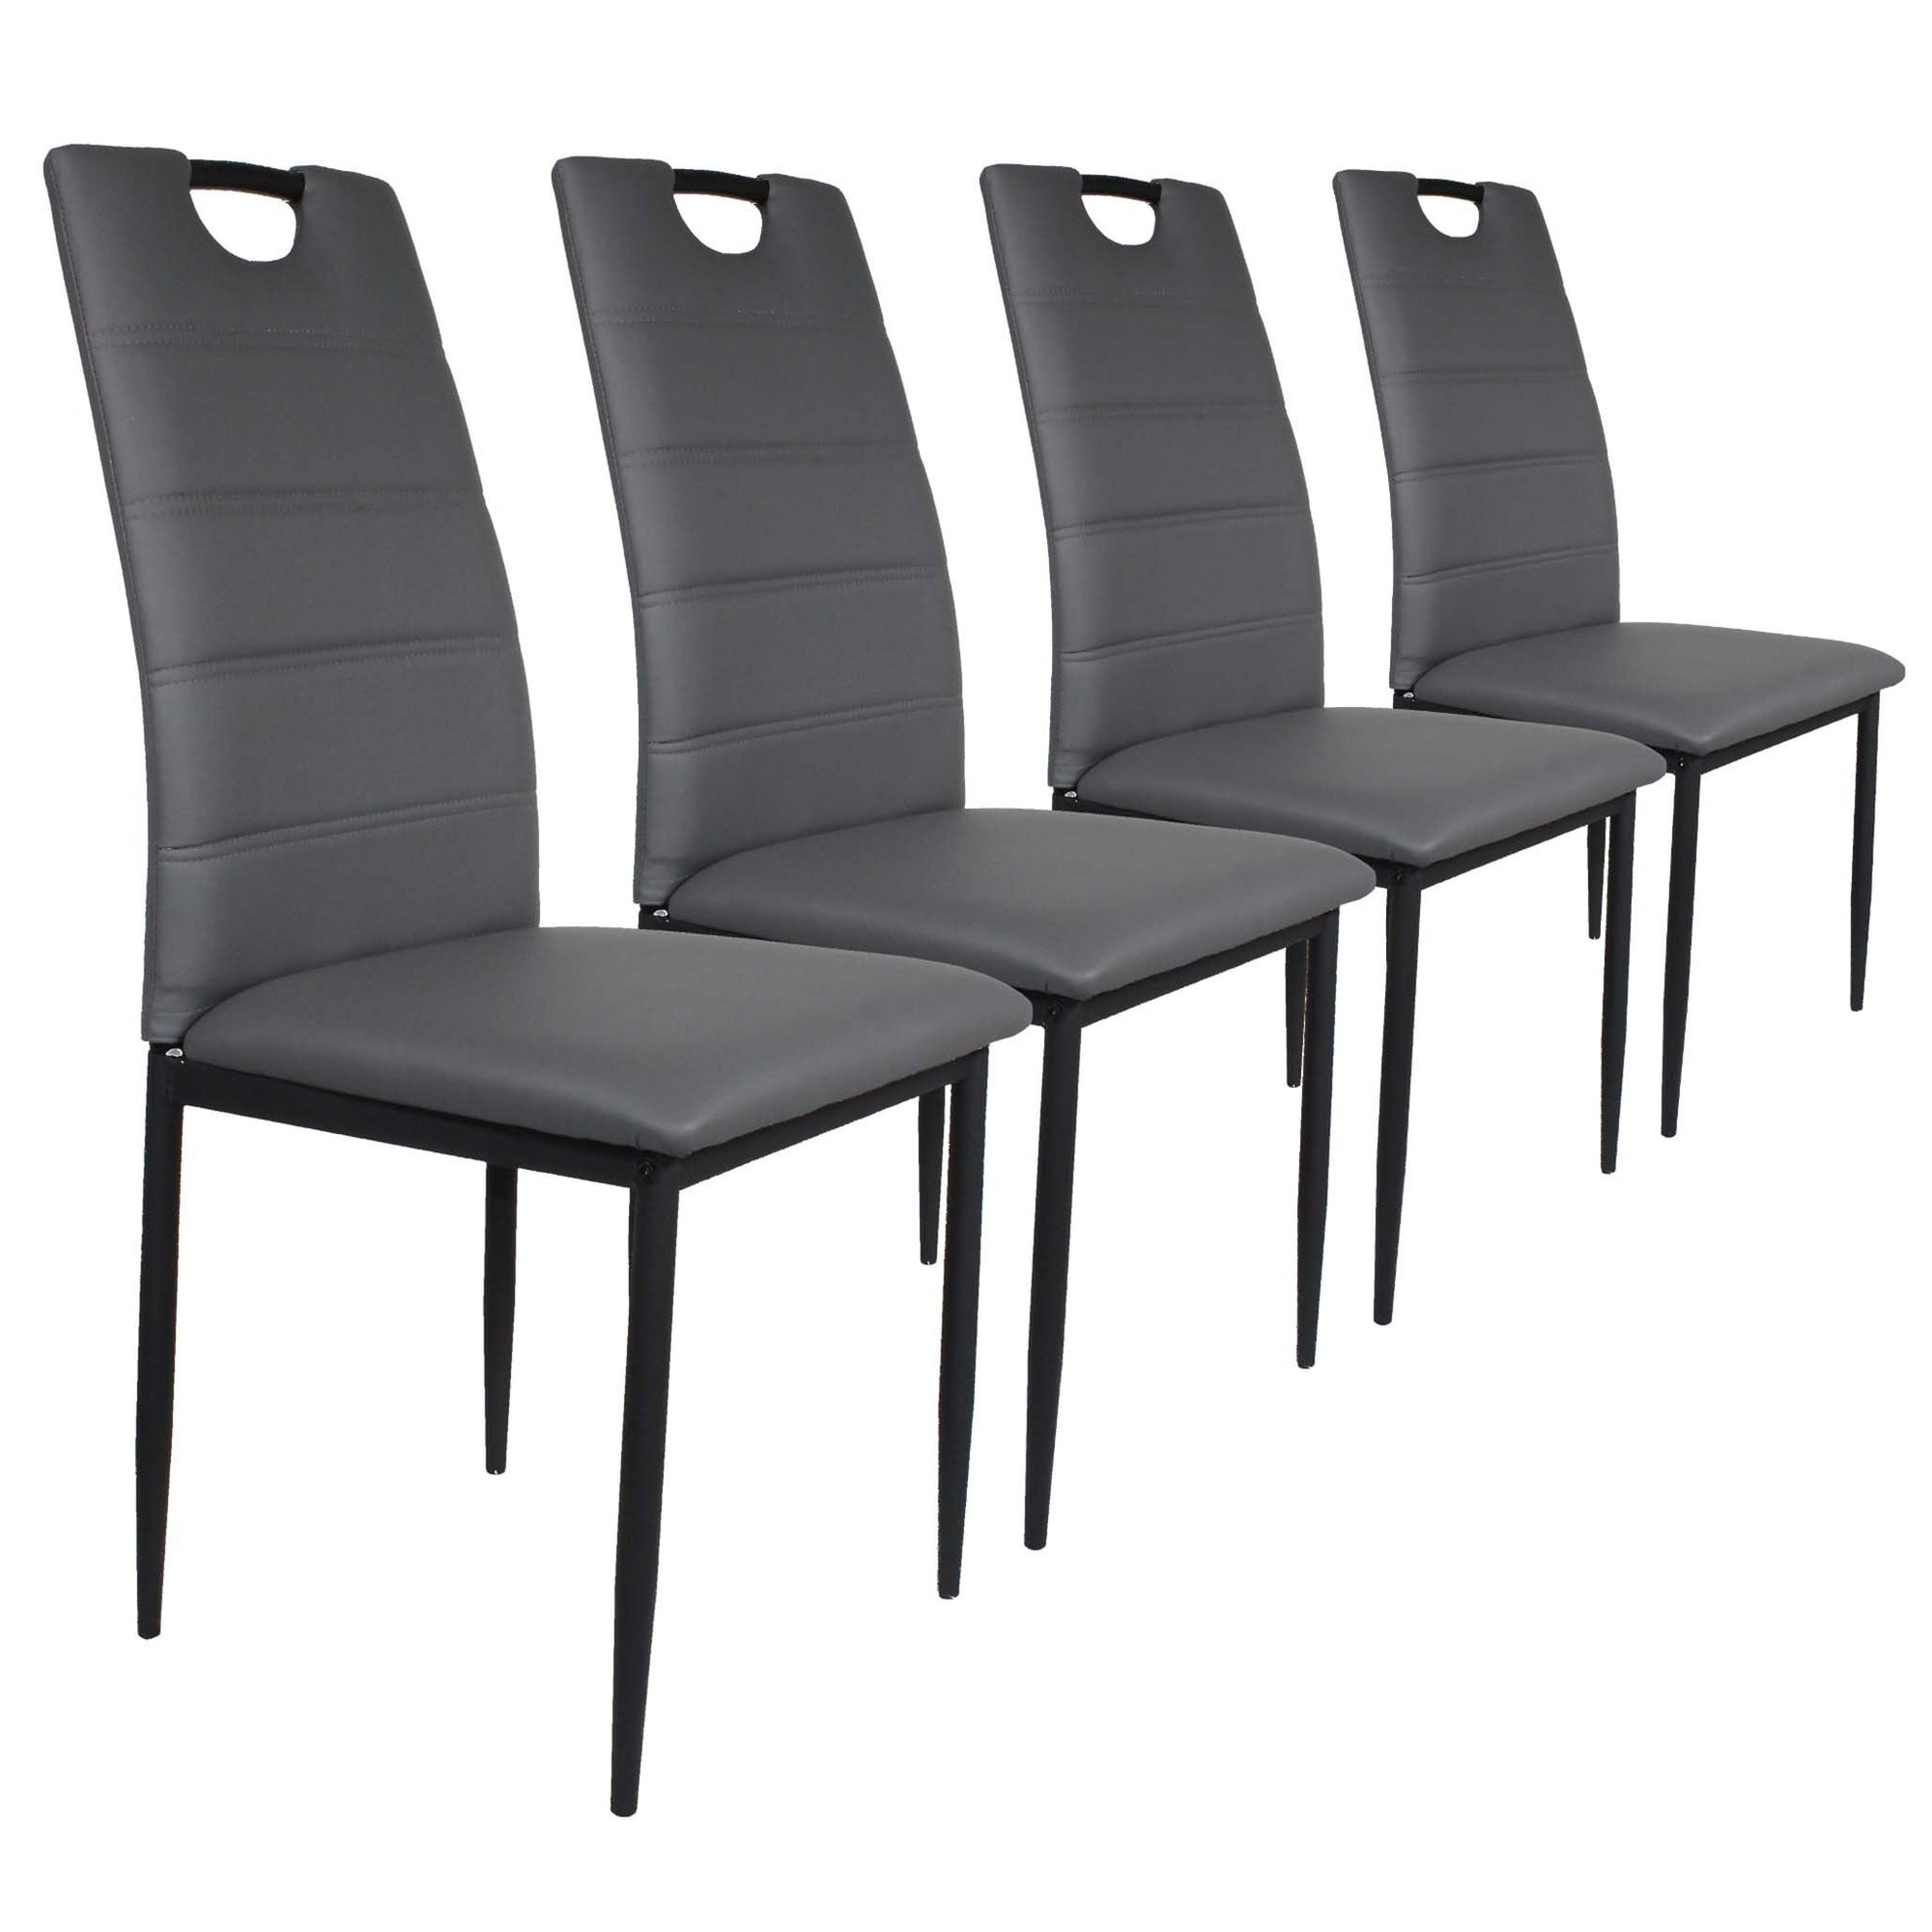 Wheaton Dining Chair - Set of 4 Chairs - by Roseland Furniture